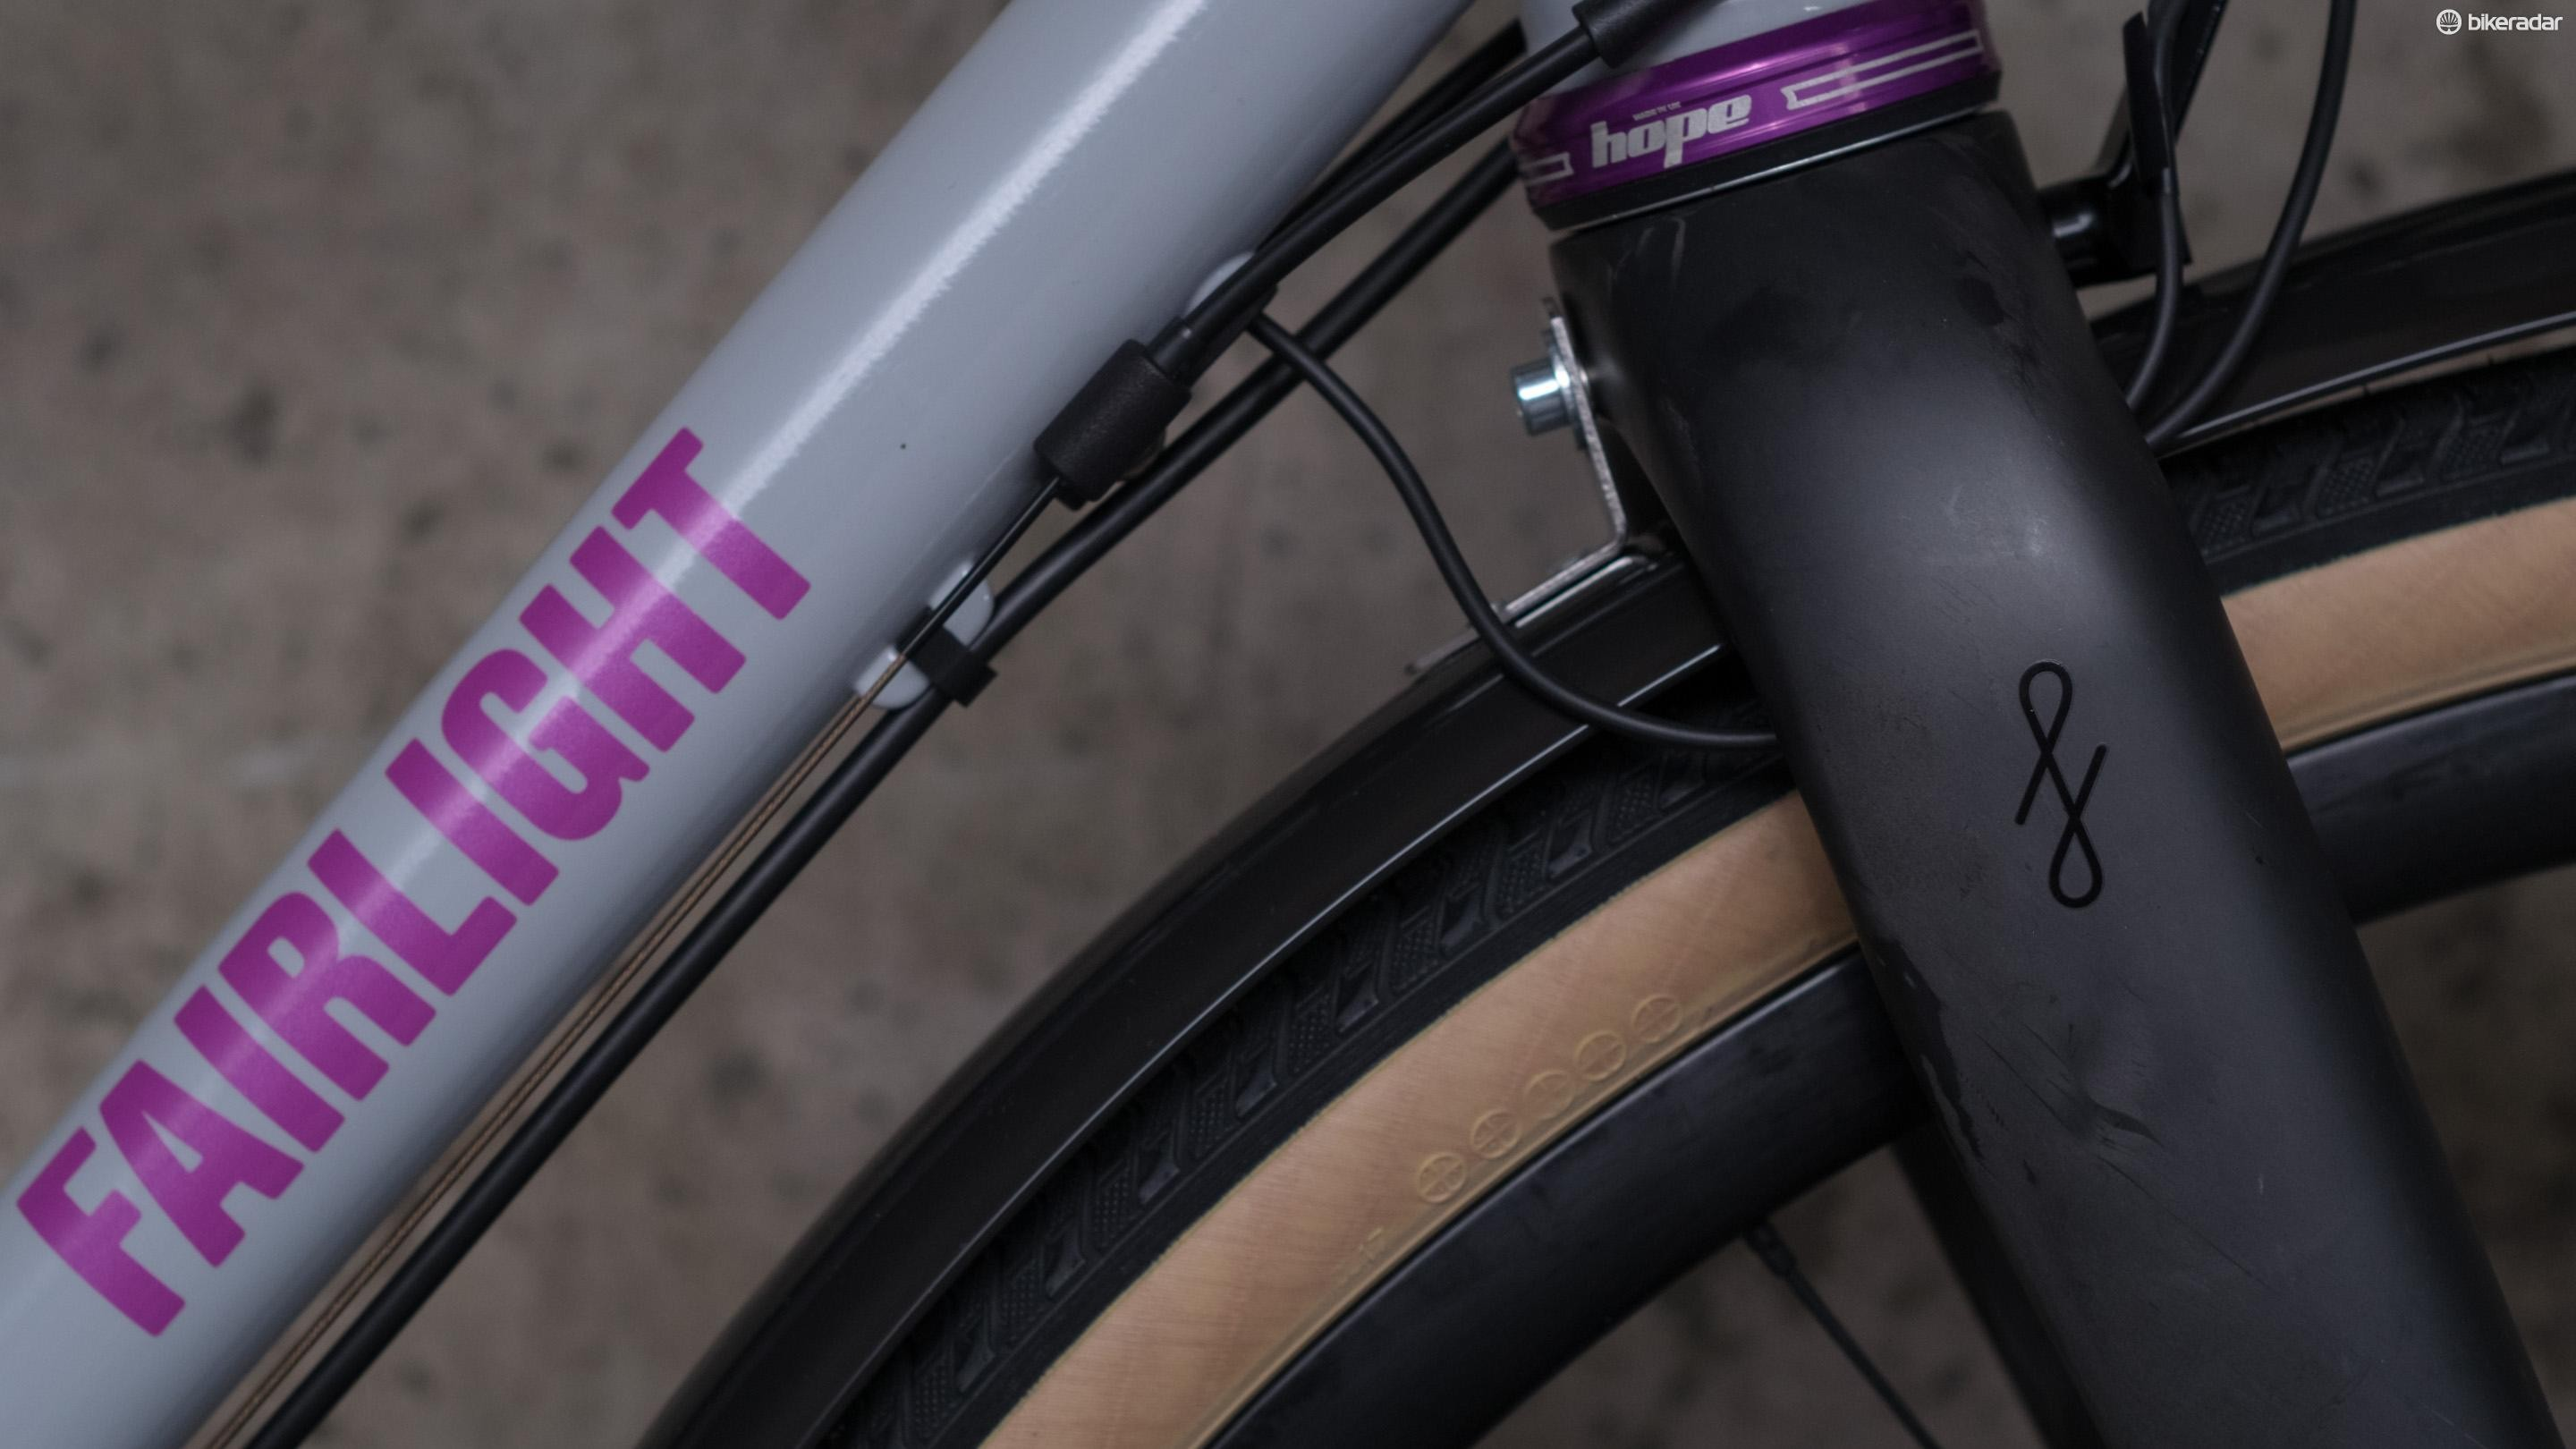 Fairlight has designed the all-new Cempa fork for the Secan